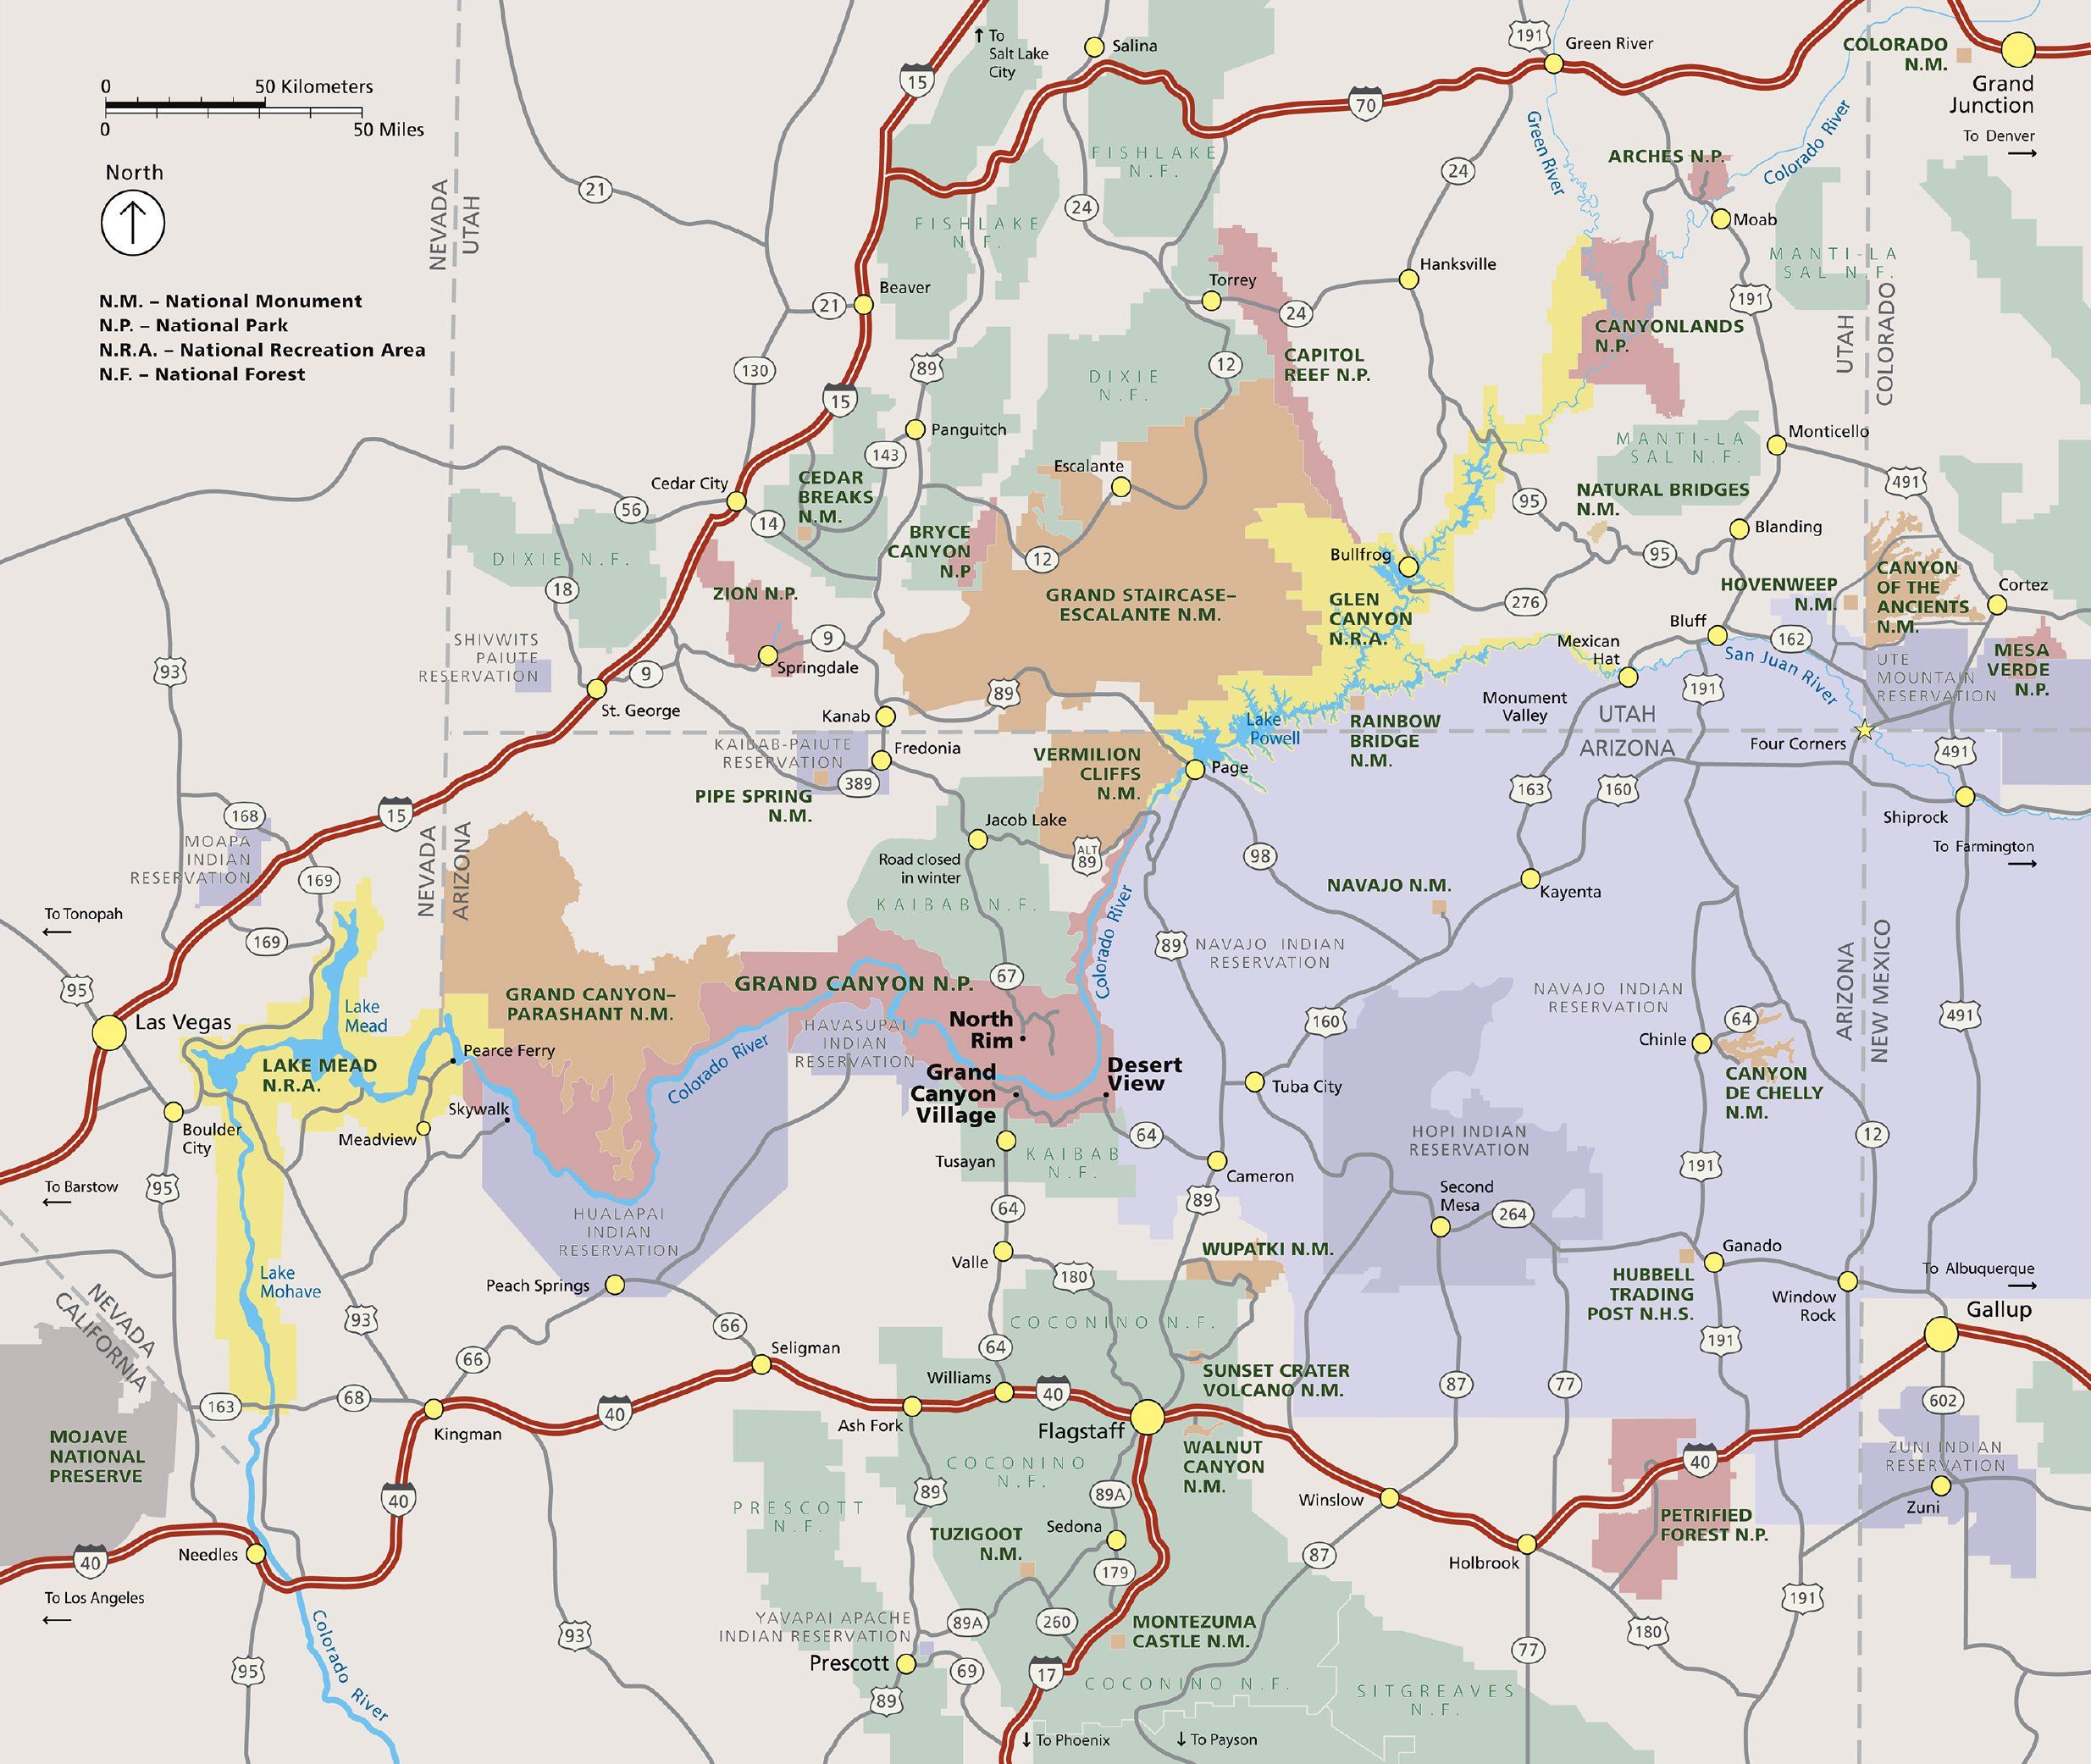 Colorful regional map of the Grand Canyon area and surrounding parks